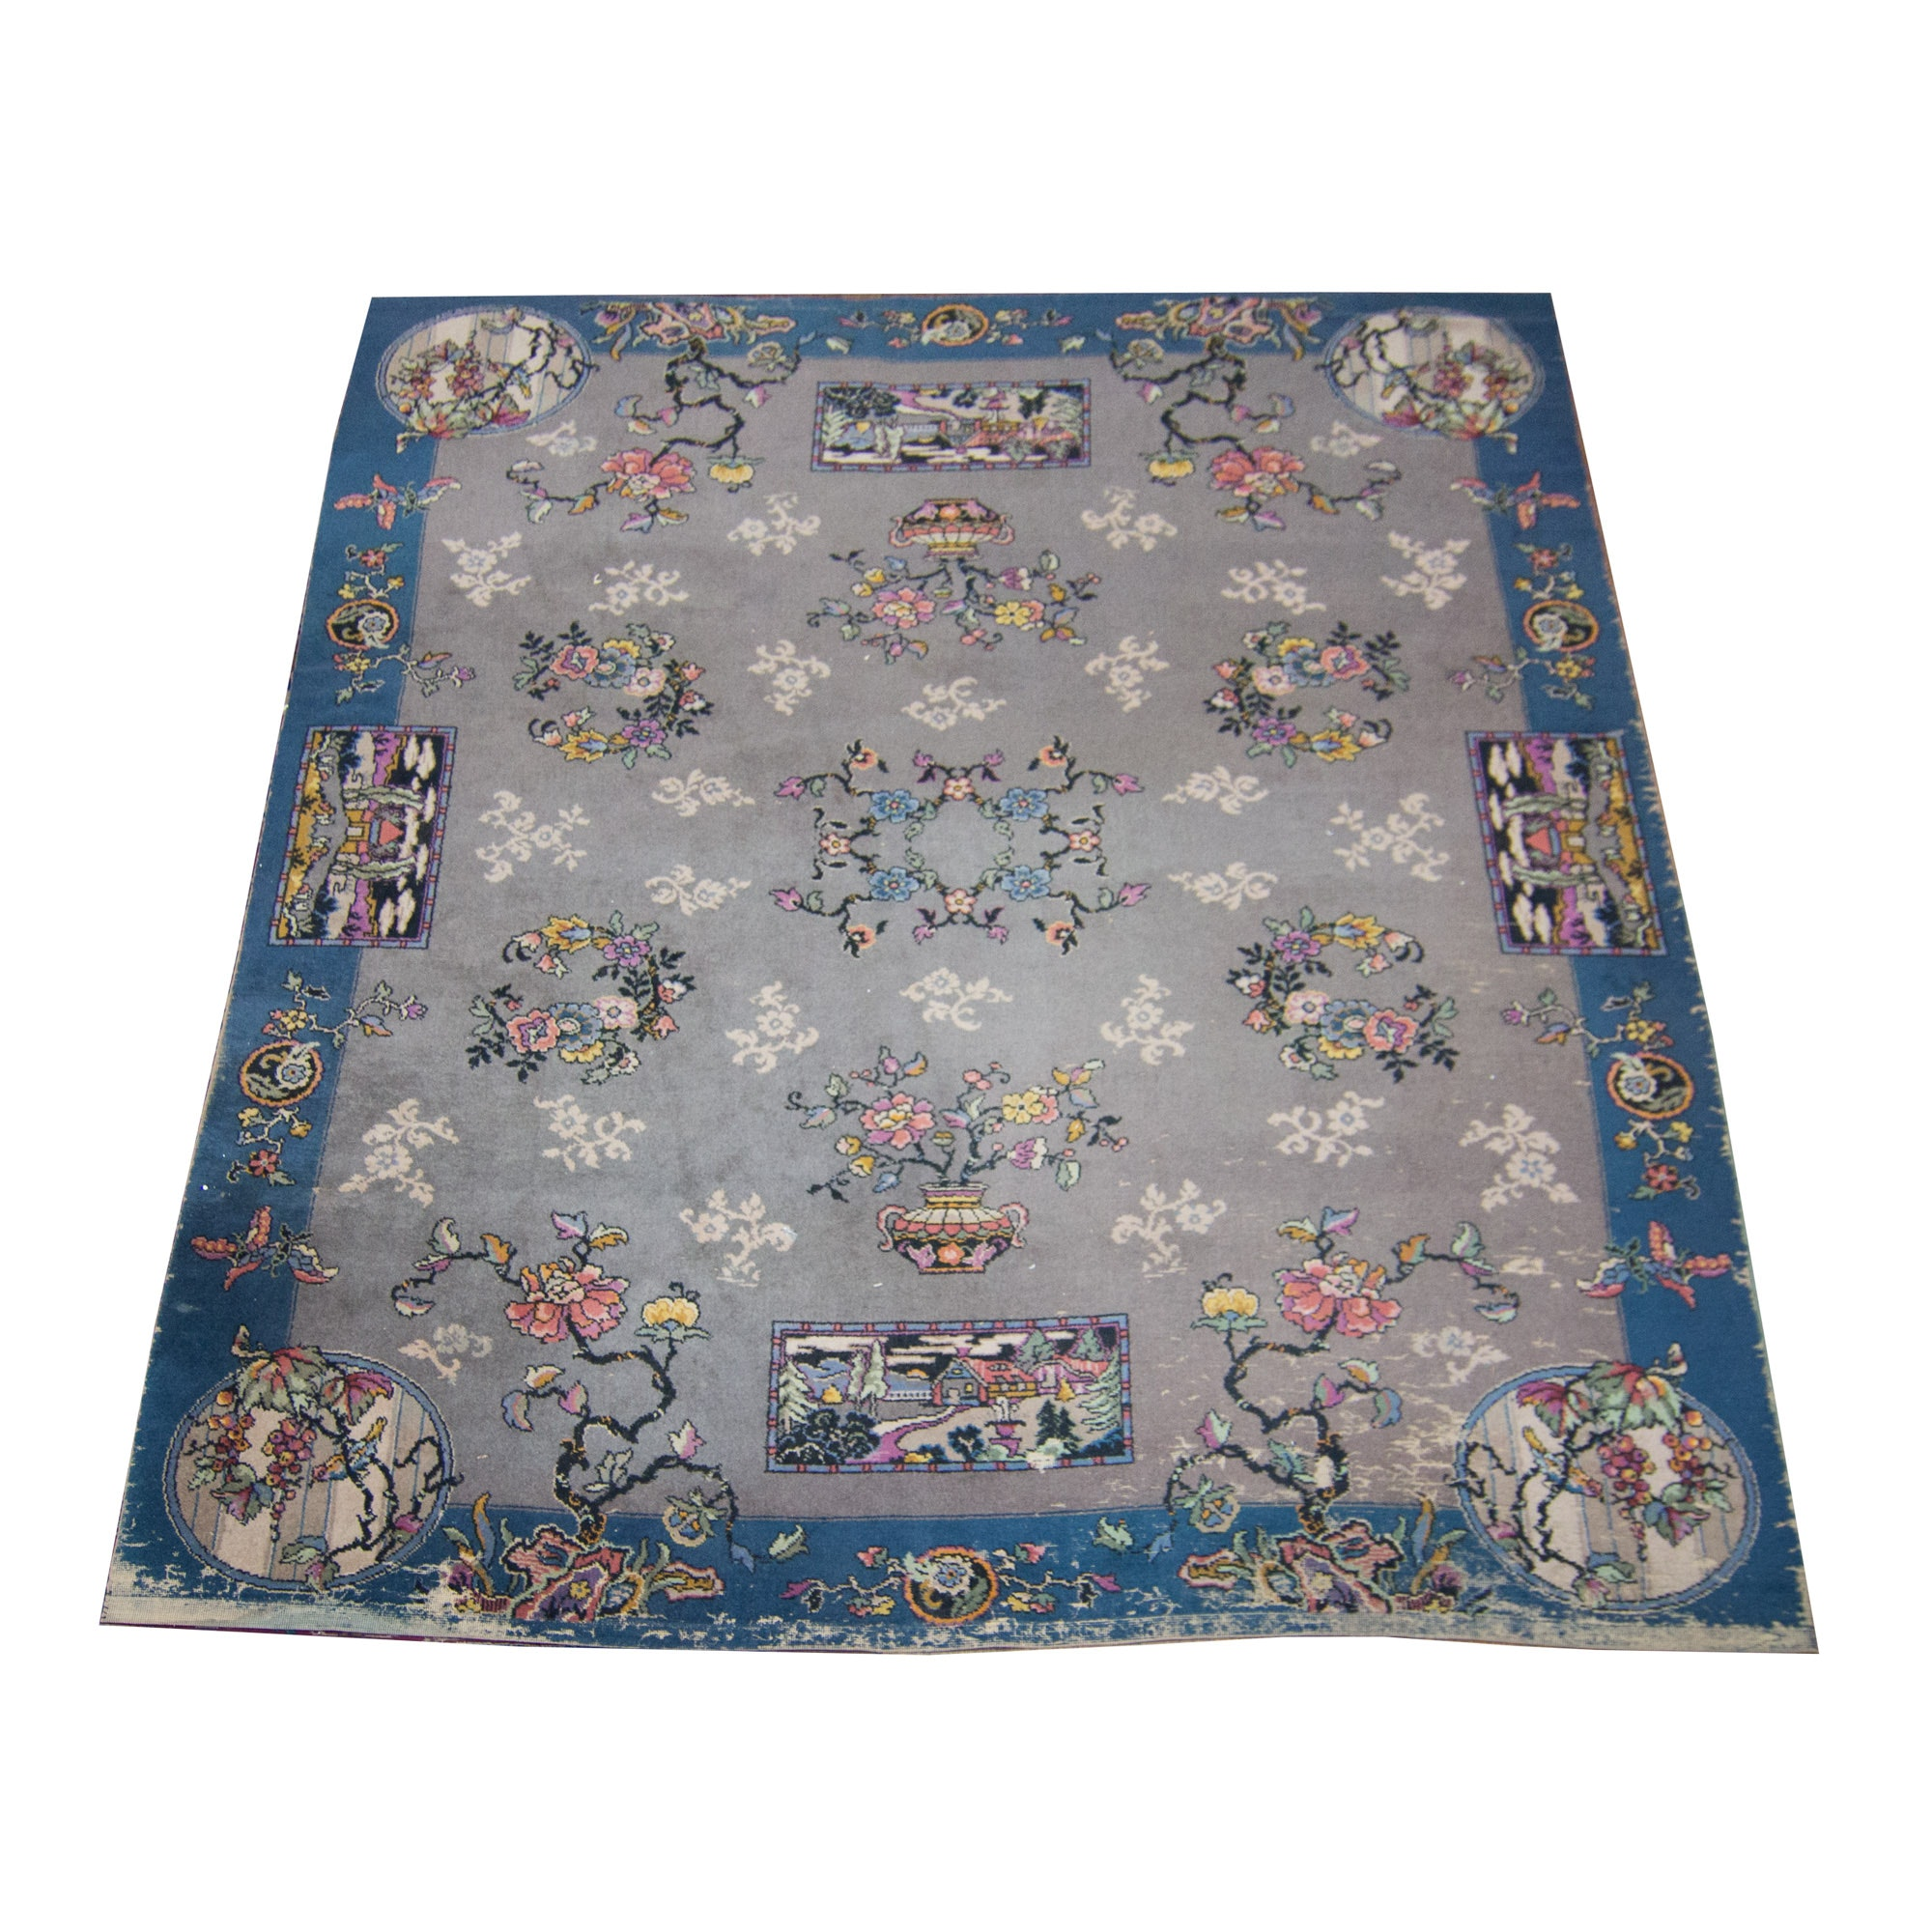 Semi-Antique Wool Alexander Smith and Sons Power-Loomed Area Rug